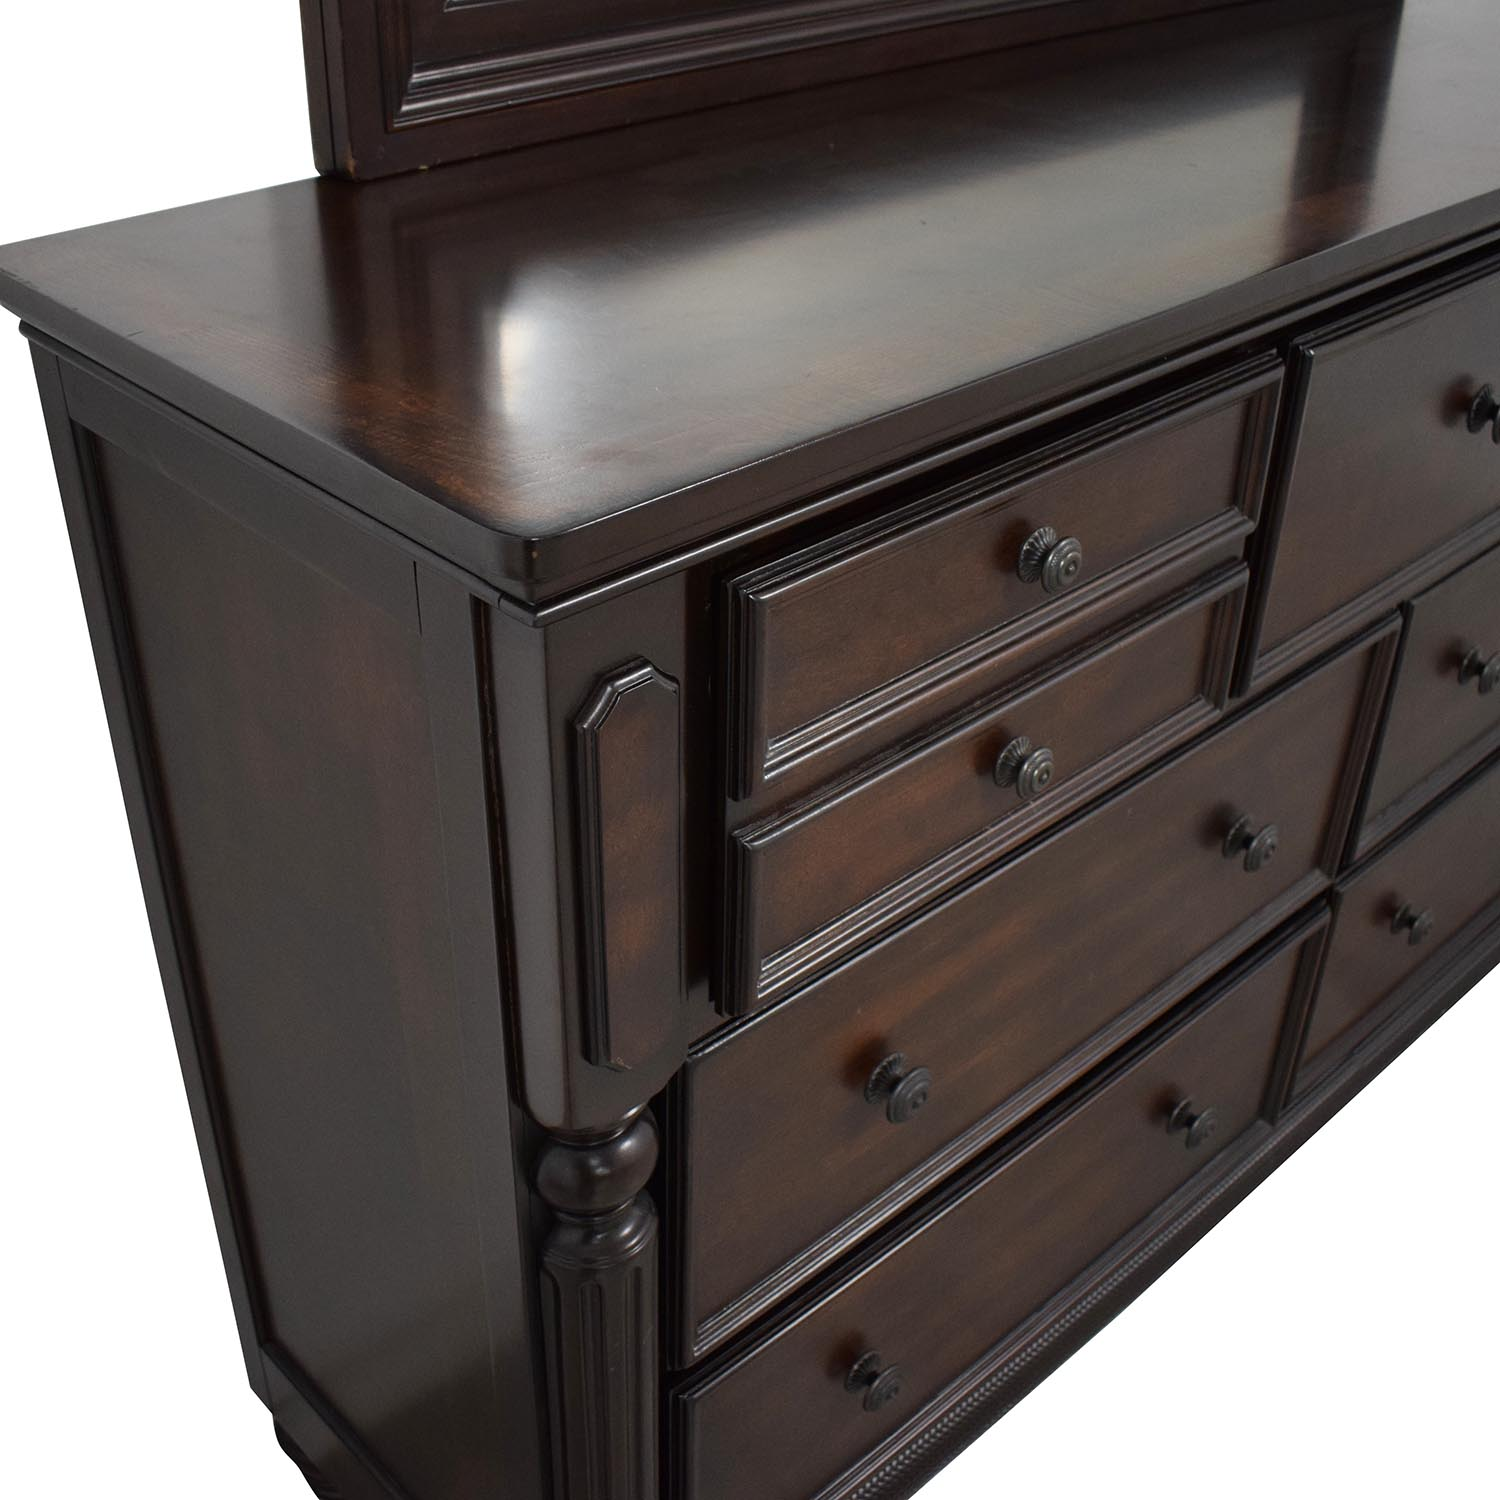 Ashley Furniture Ashley Furniture Key Town Dresser with Mirror used